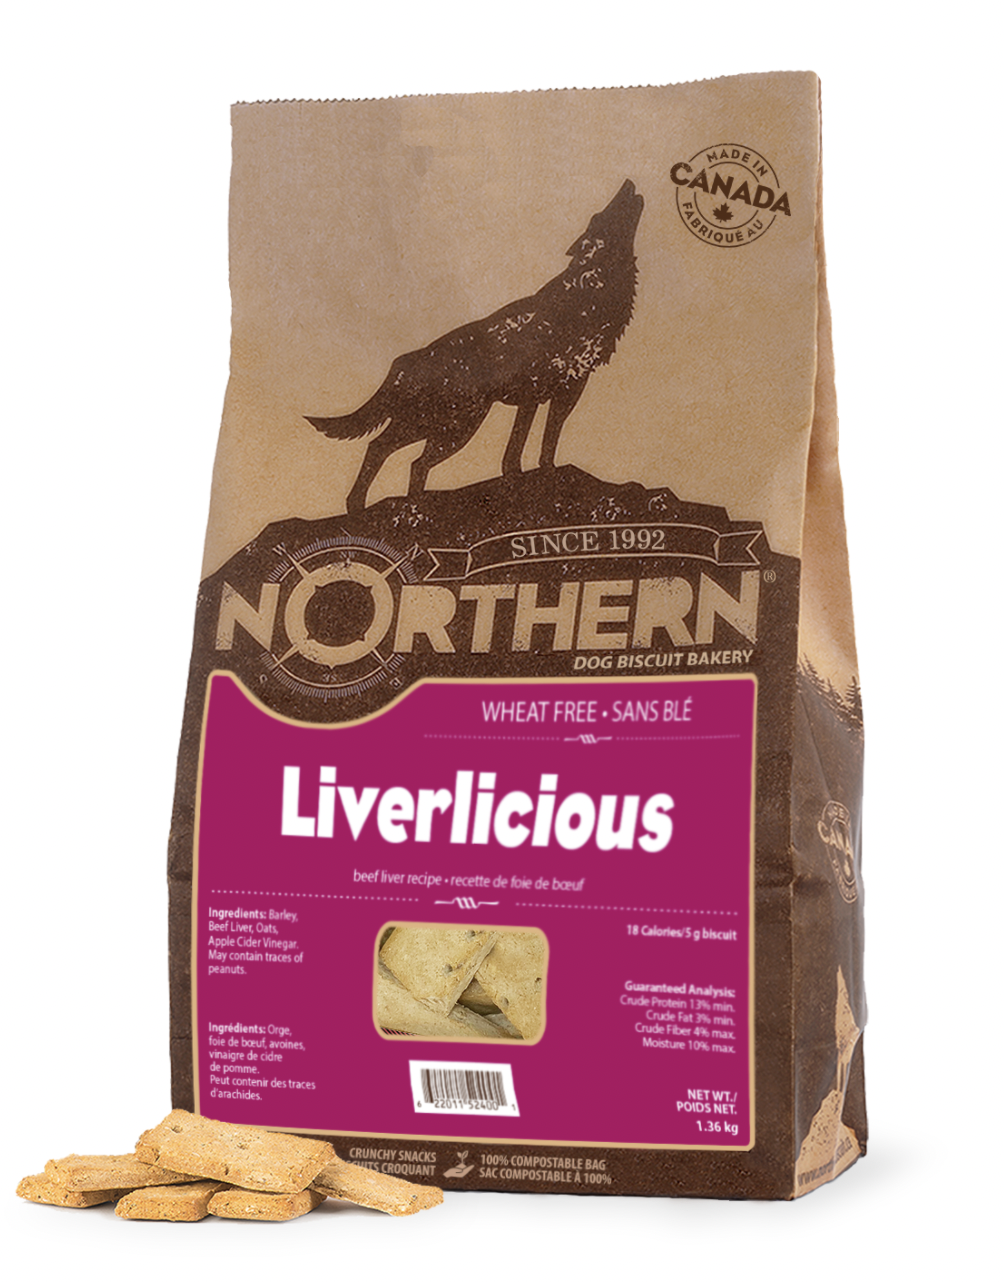 Northern Biscuits Wheat Free Liverlicious 500g